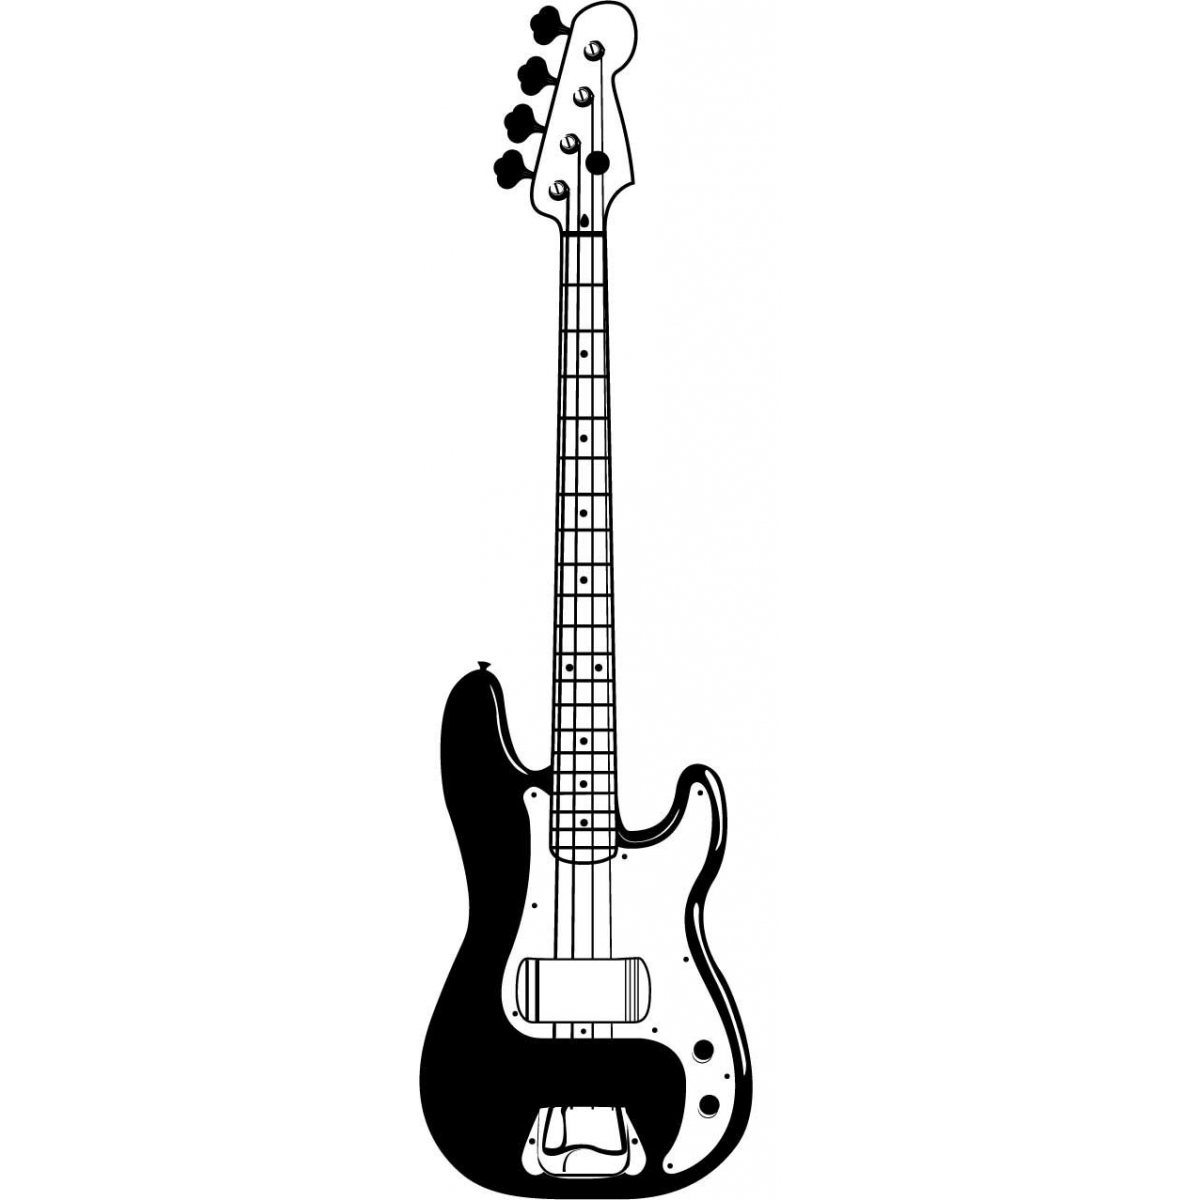 Guitar Black And White Picture Of An Electric Guitar Free